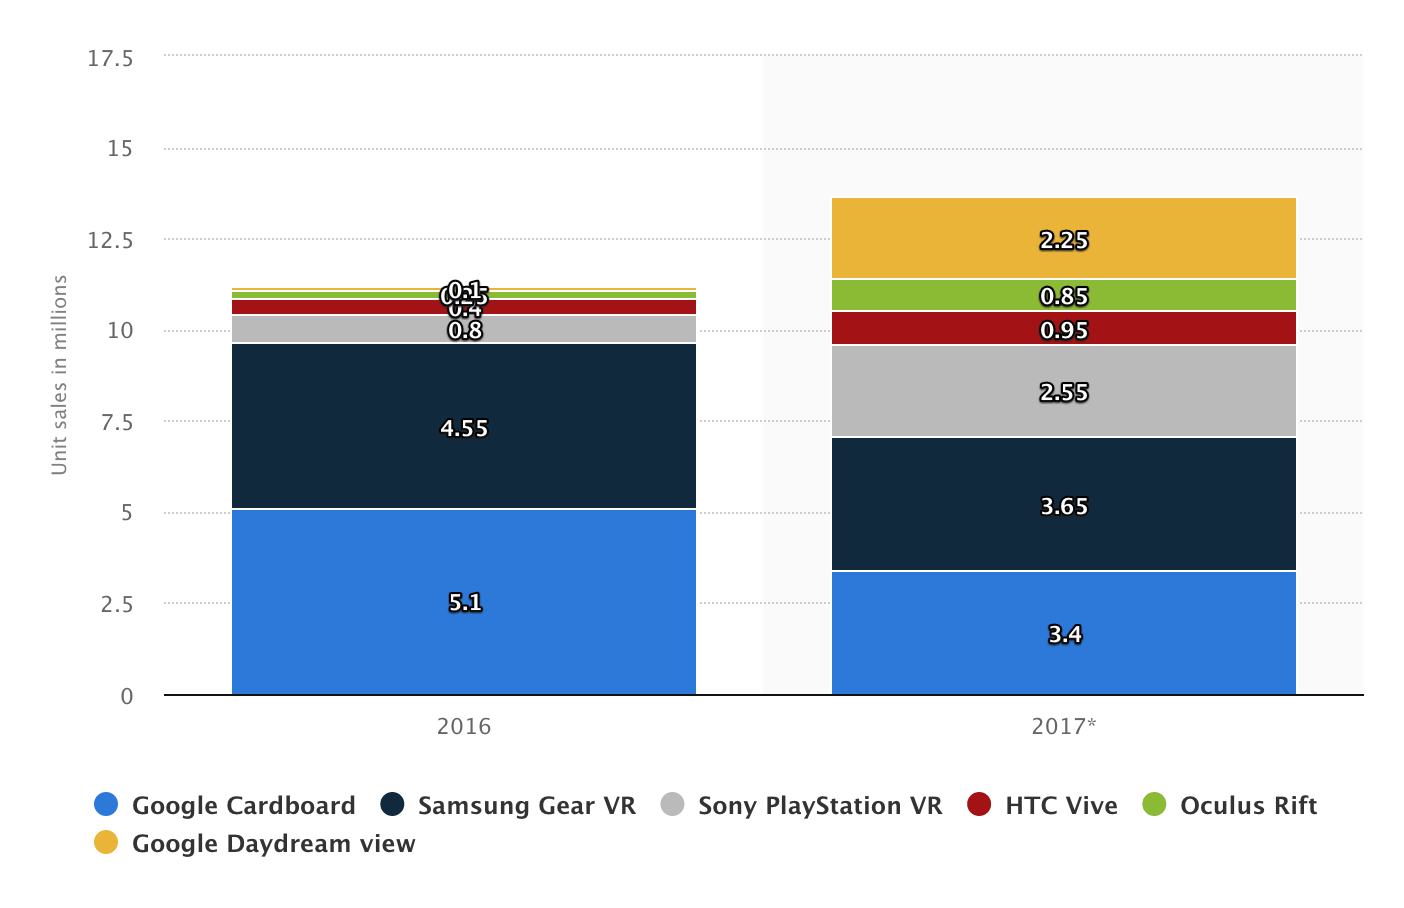 VR Devices Sales 2016/2017